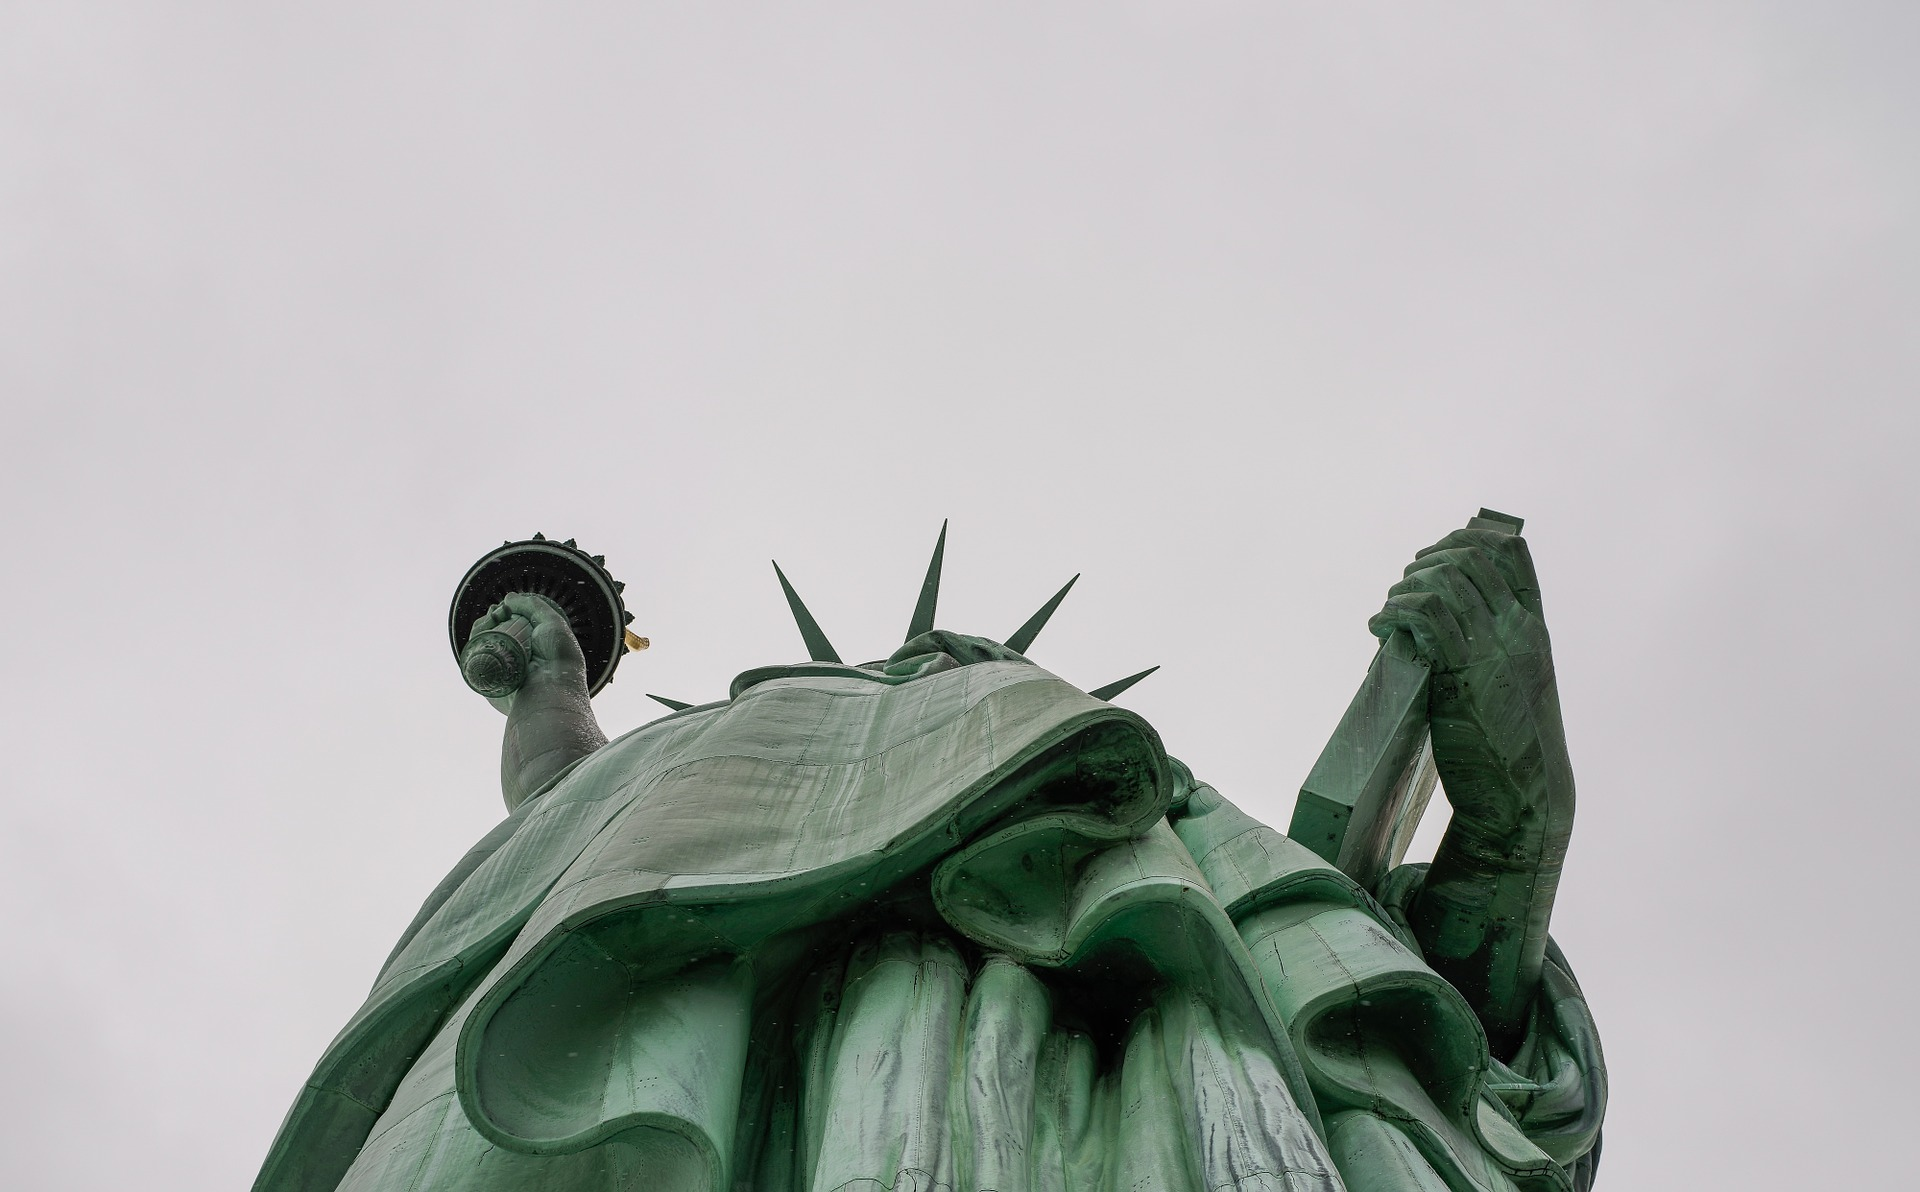 statue-of-liberty-from below